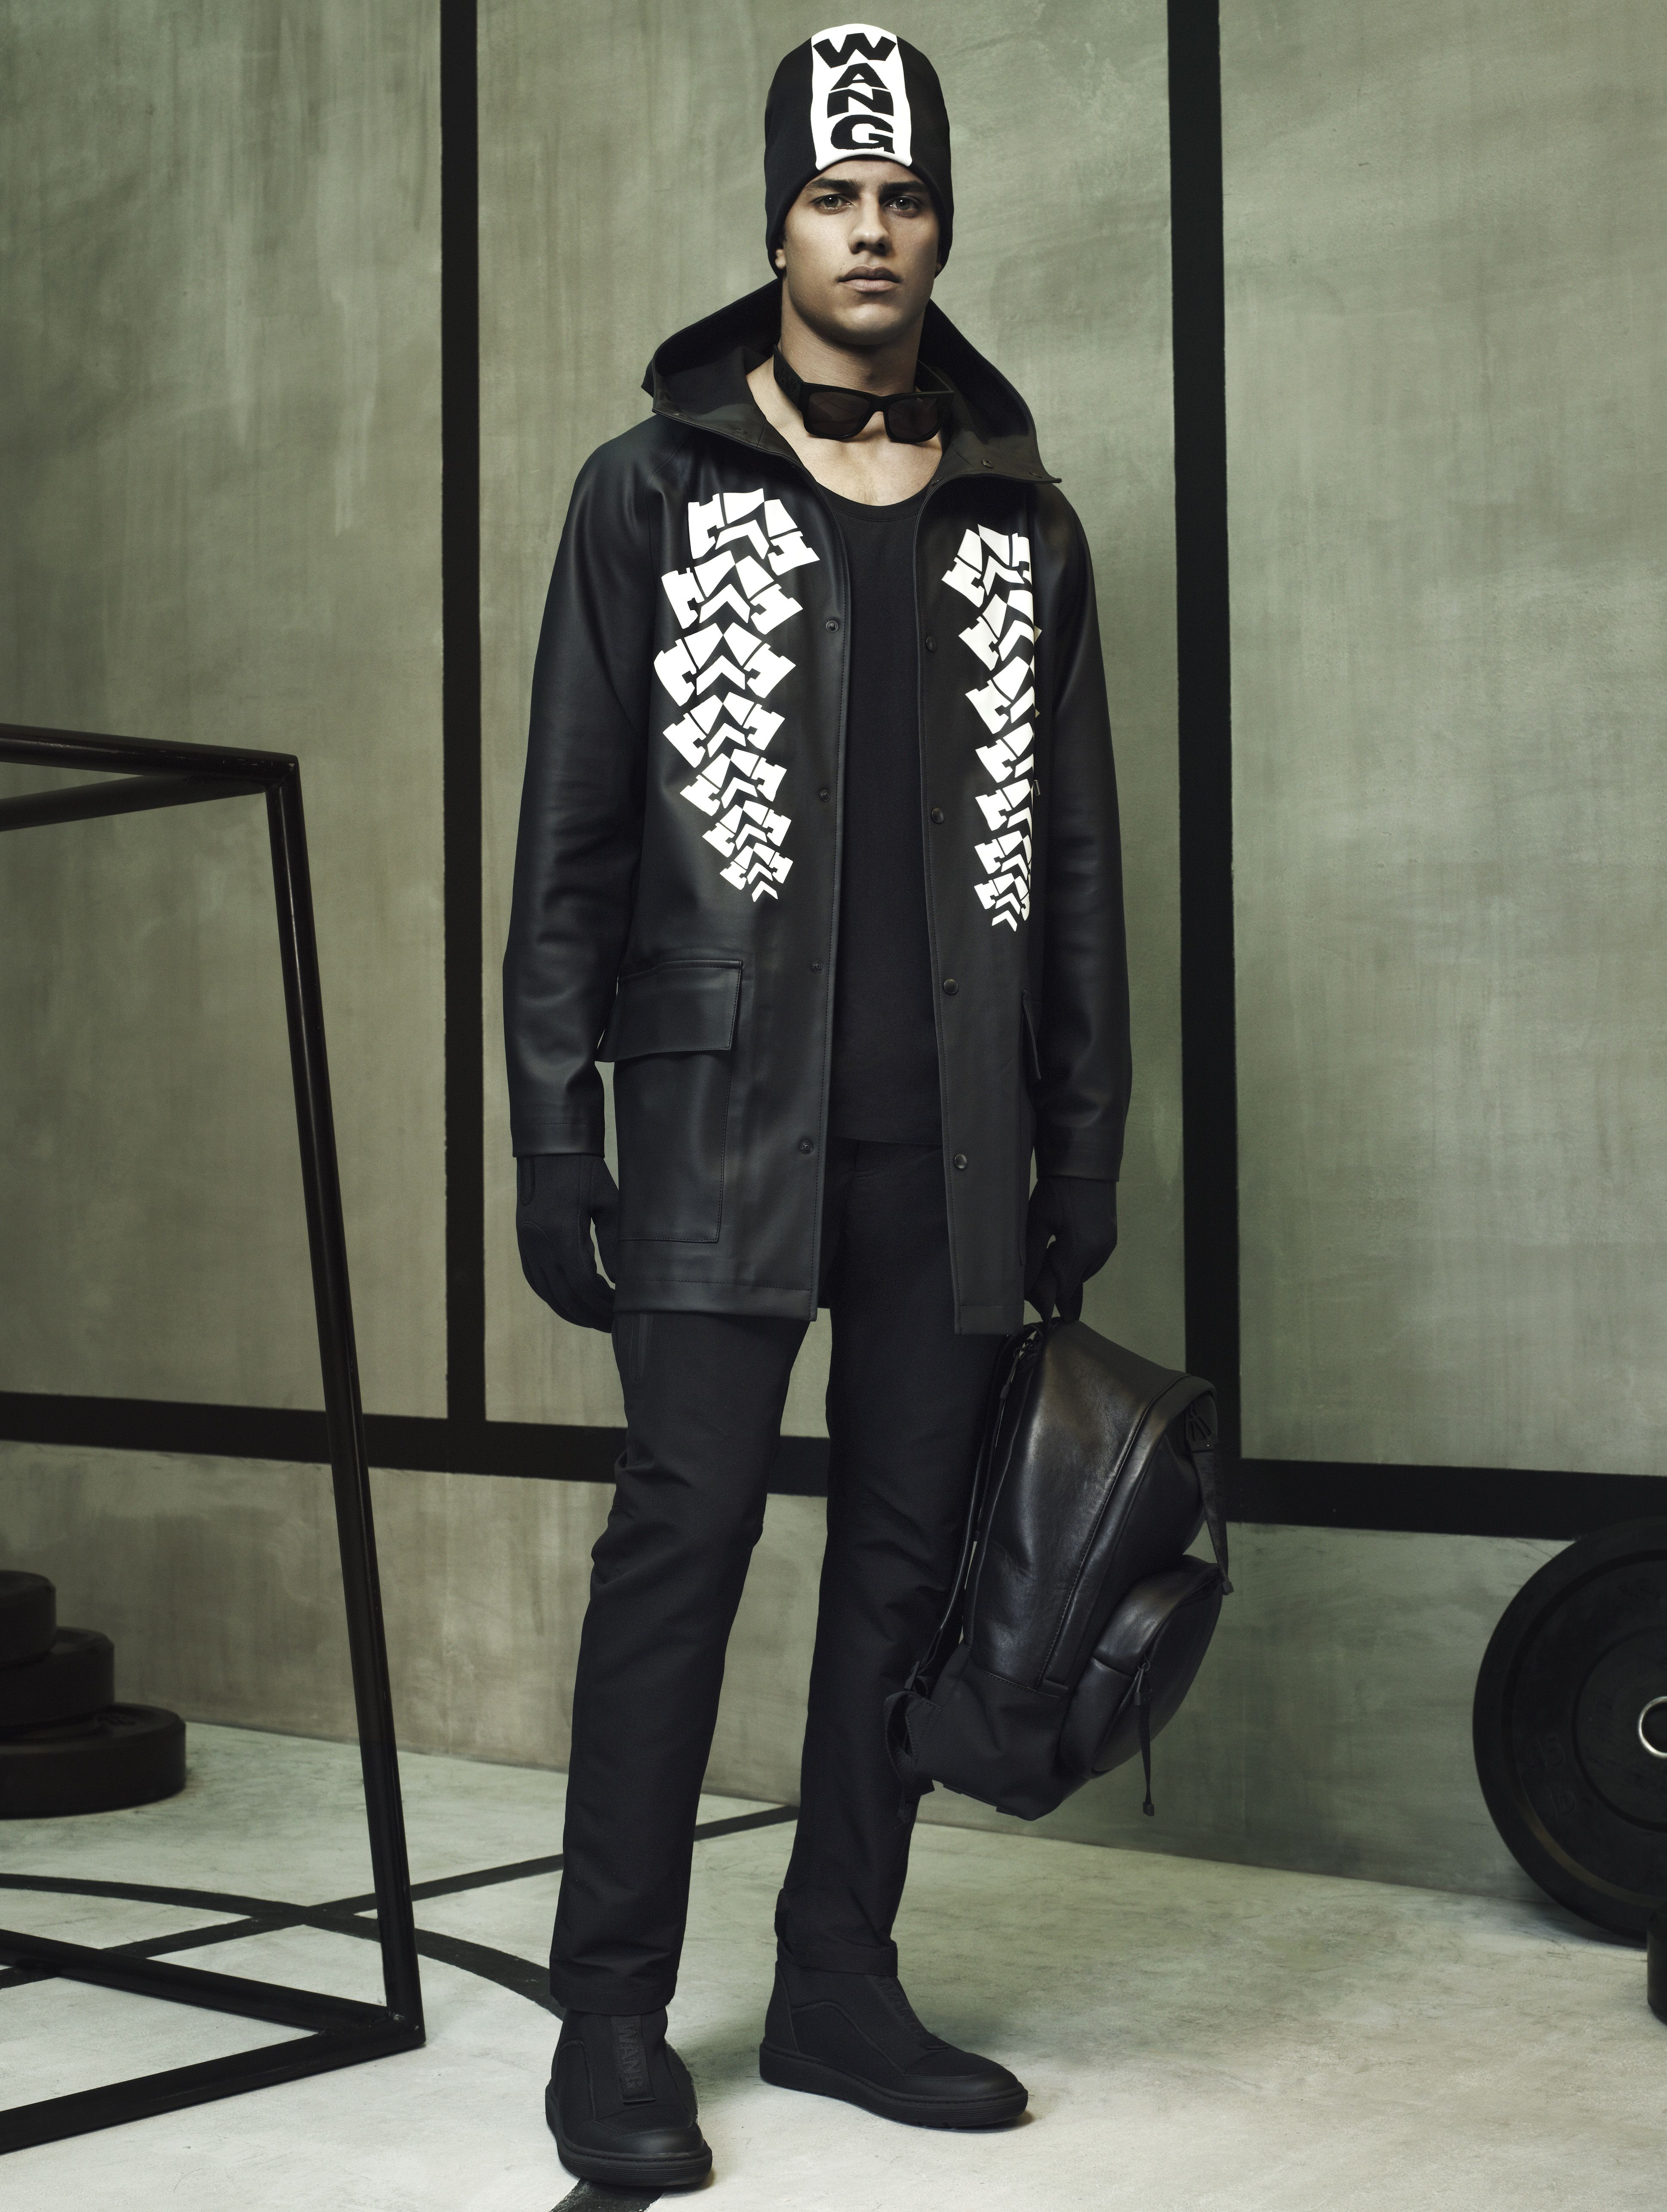 Wang alexander big things expected exclusive photo